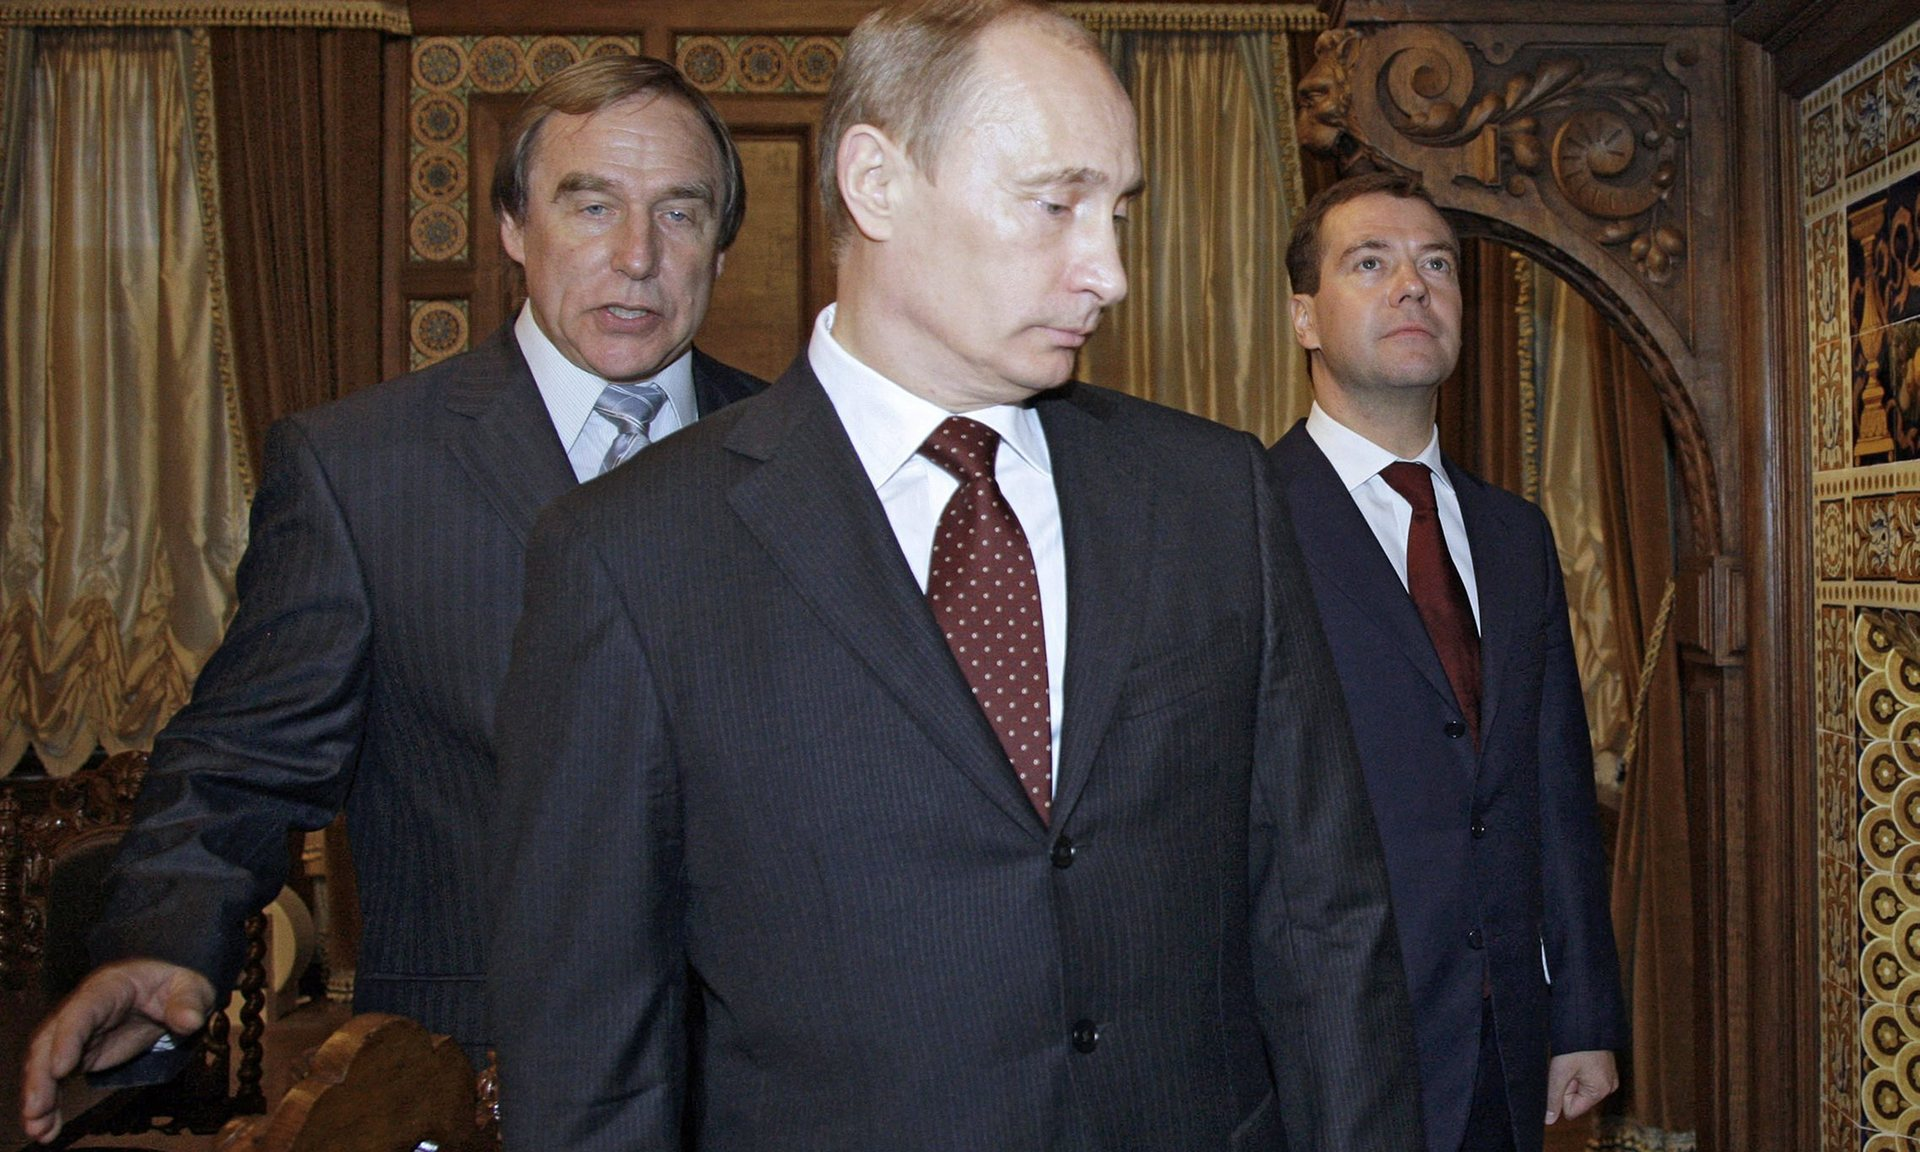 Sergei Roldugin, Vladimir Putin and Dmitry Medvedev, then Russian president, tour the House of Music in St Petersburg in 2009. PIcture by Dmitry Astakhov | Sputnik/Kremlin Pool/EPA